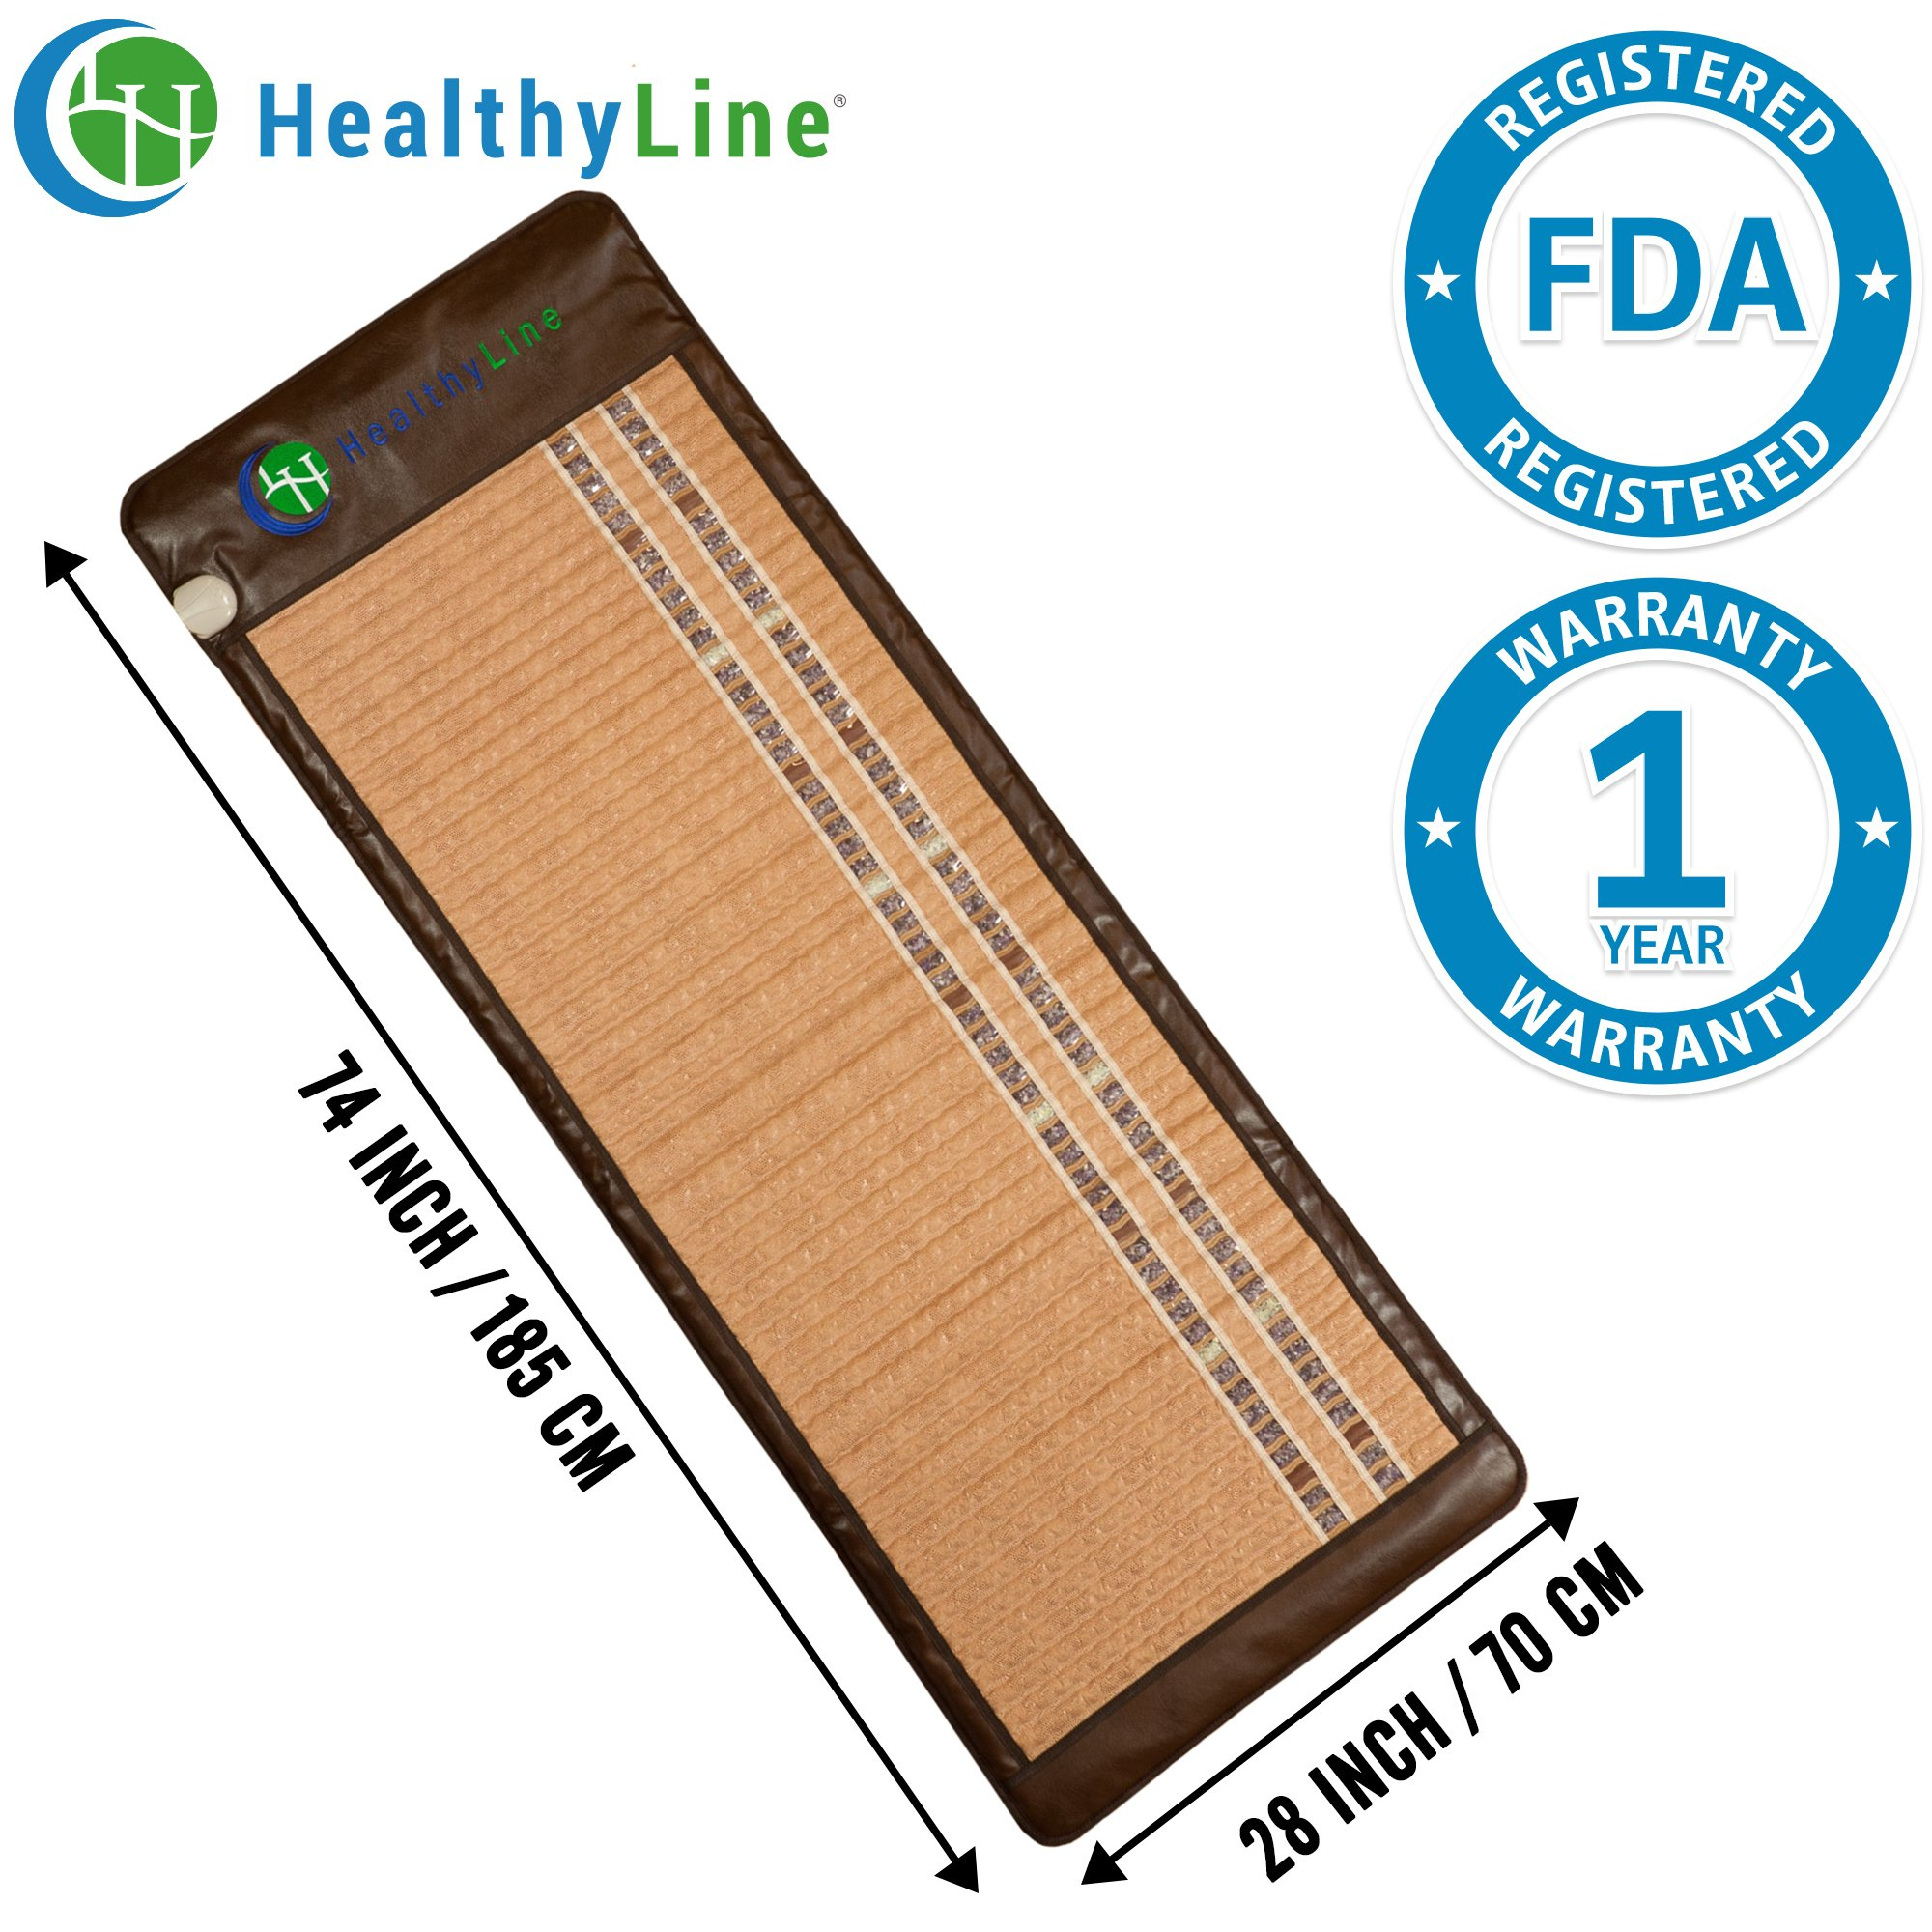 HealthyLine Infrared Heating Mat - Pain Relief Sore Muscles, Arthritis and Injury Recovery (Soft & Flexible, Full-Body) 74″ x 28″| Natural Amethyst, Jade & Tourmaline Ceramic | ​​US FDA by HealthyLine (Image #1)